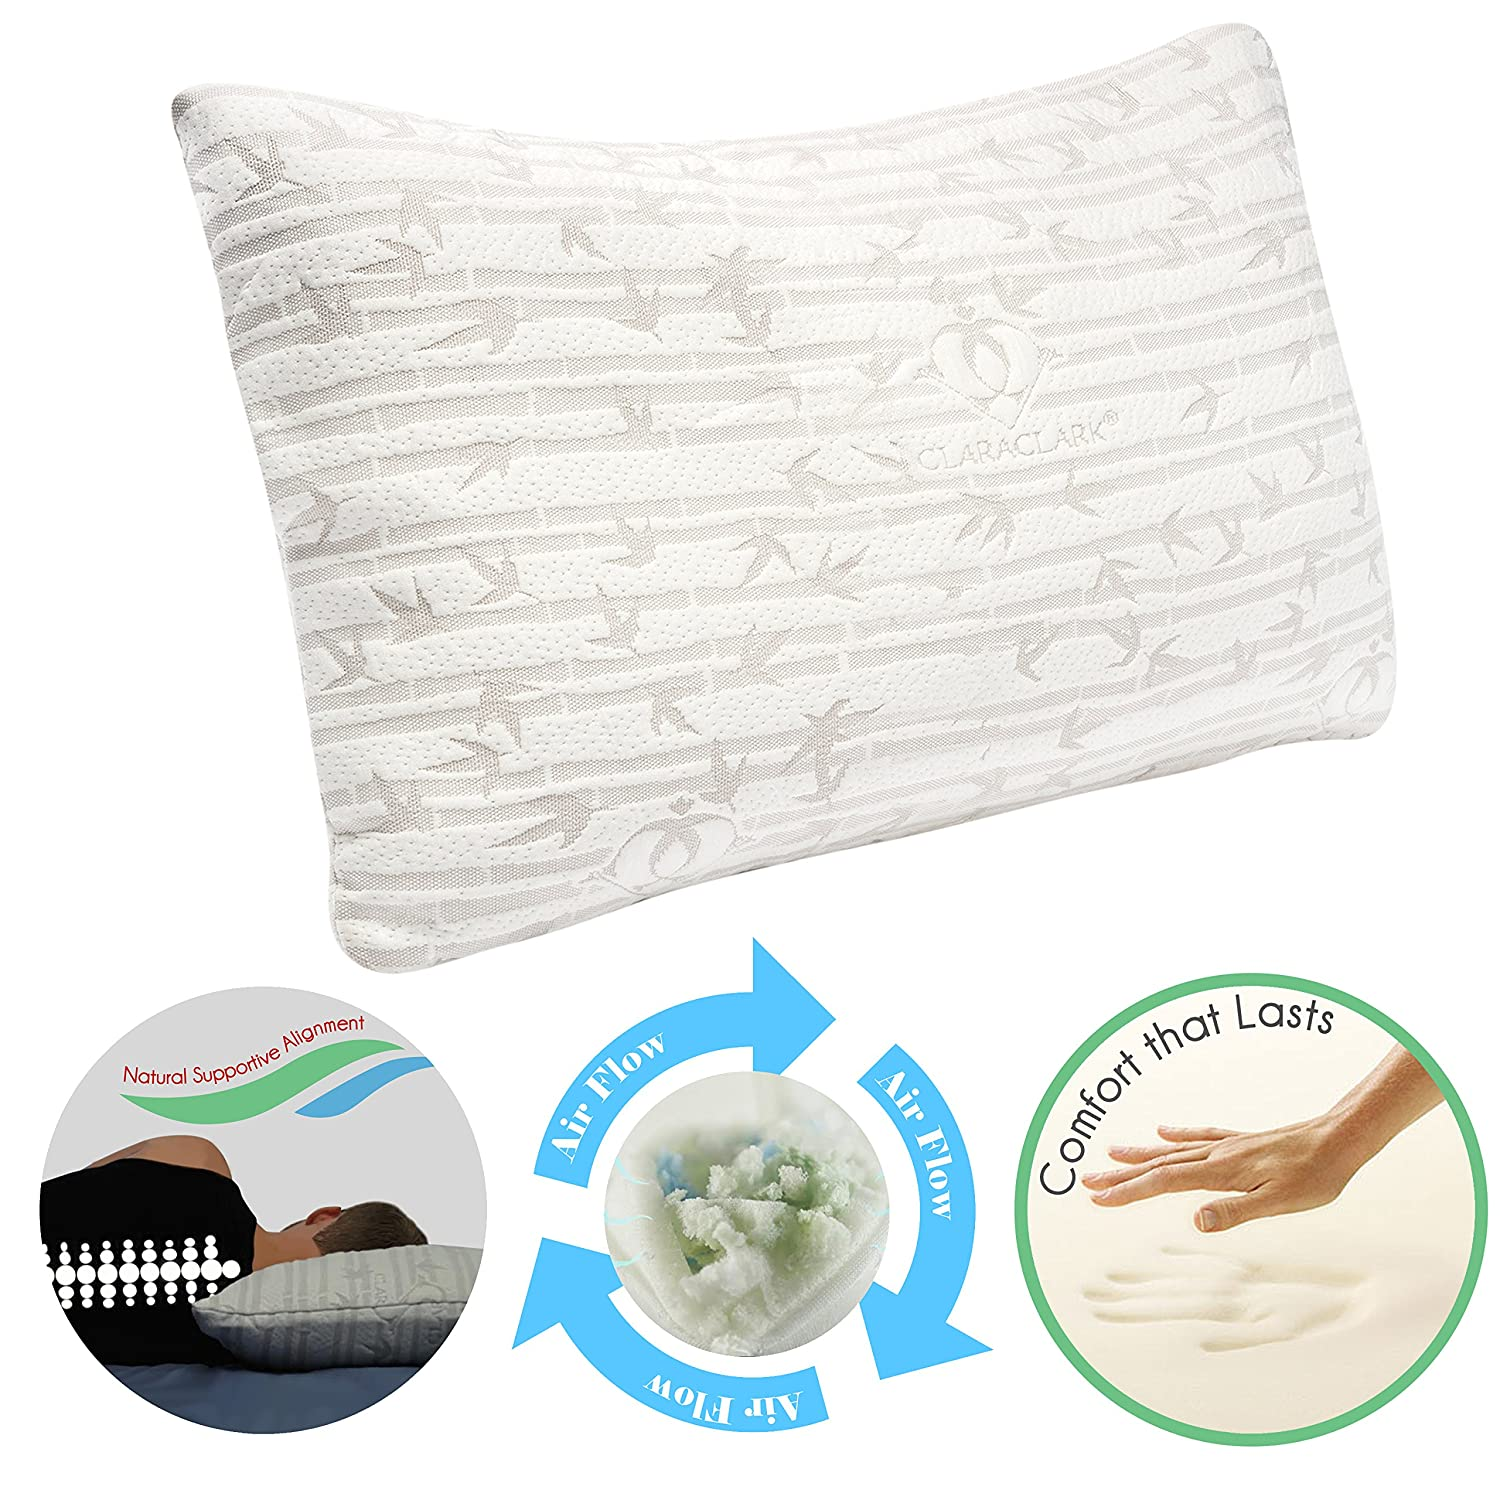 contour aeris pillow new vitality sleep premium memory shipping of with side free blu sleeper foam fresh king ventilated today size